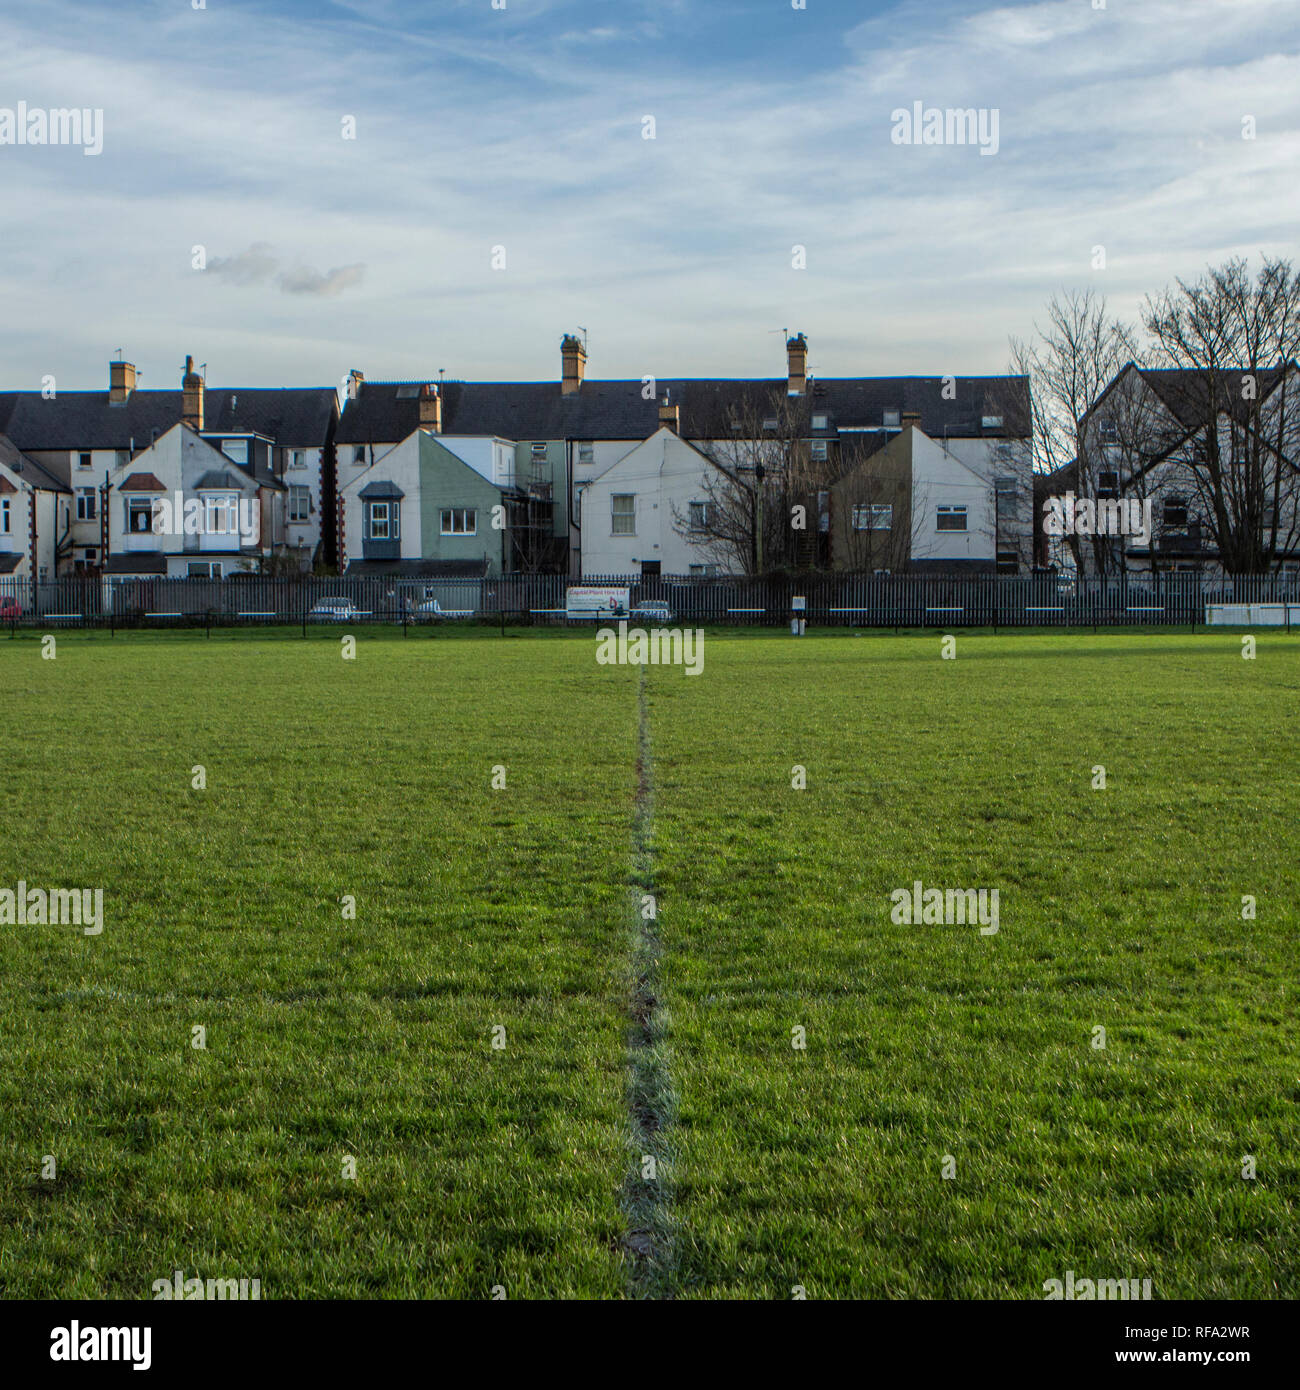 Study of the rugby pitch at St Peters, Cardiff - Stock Image